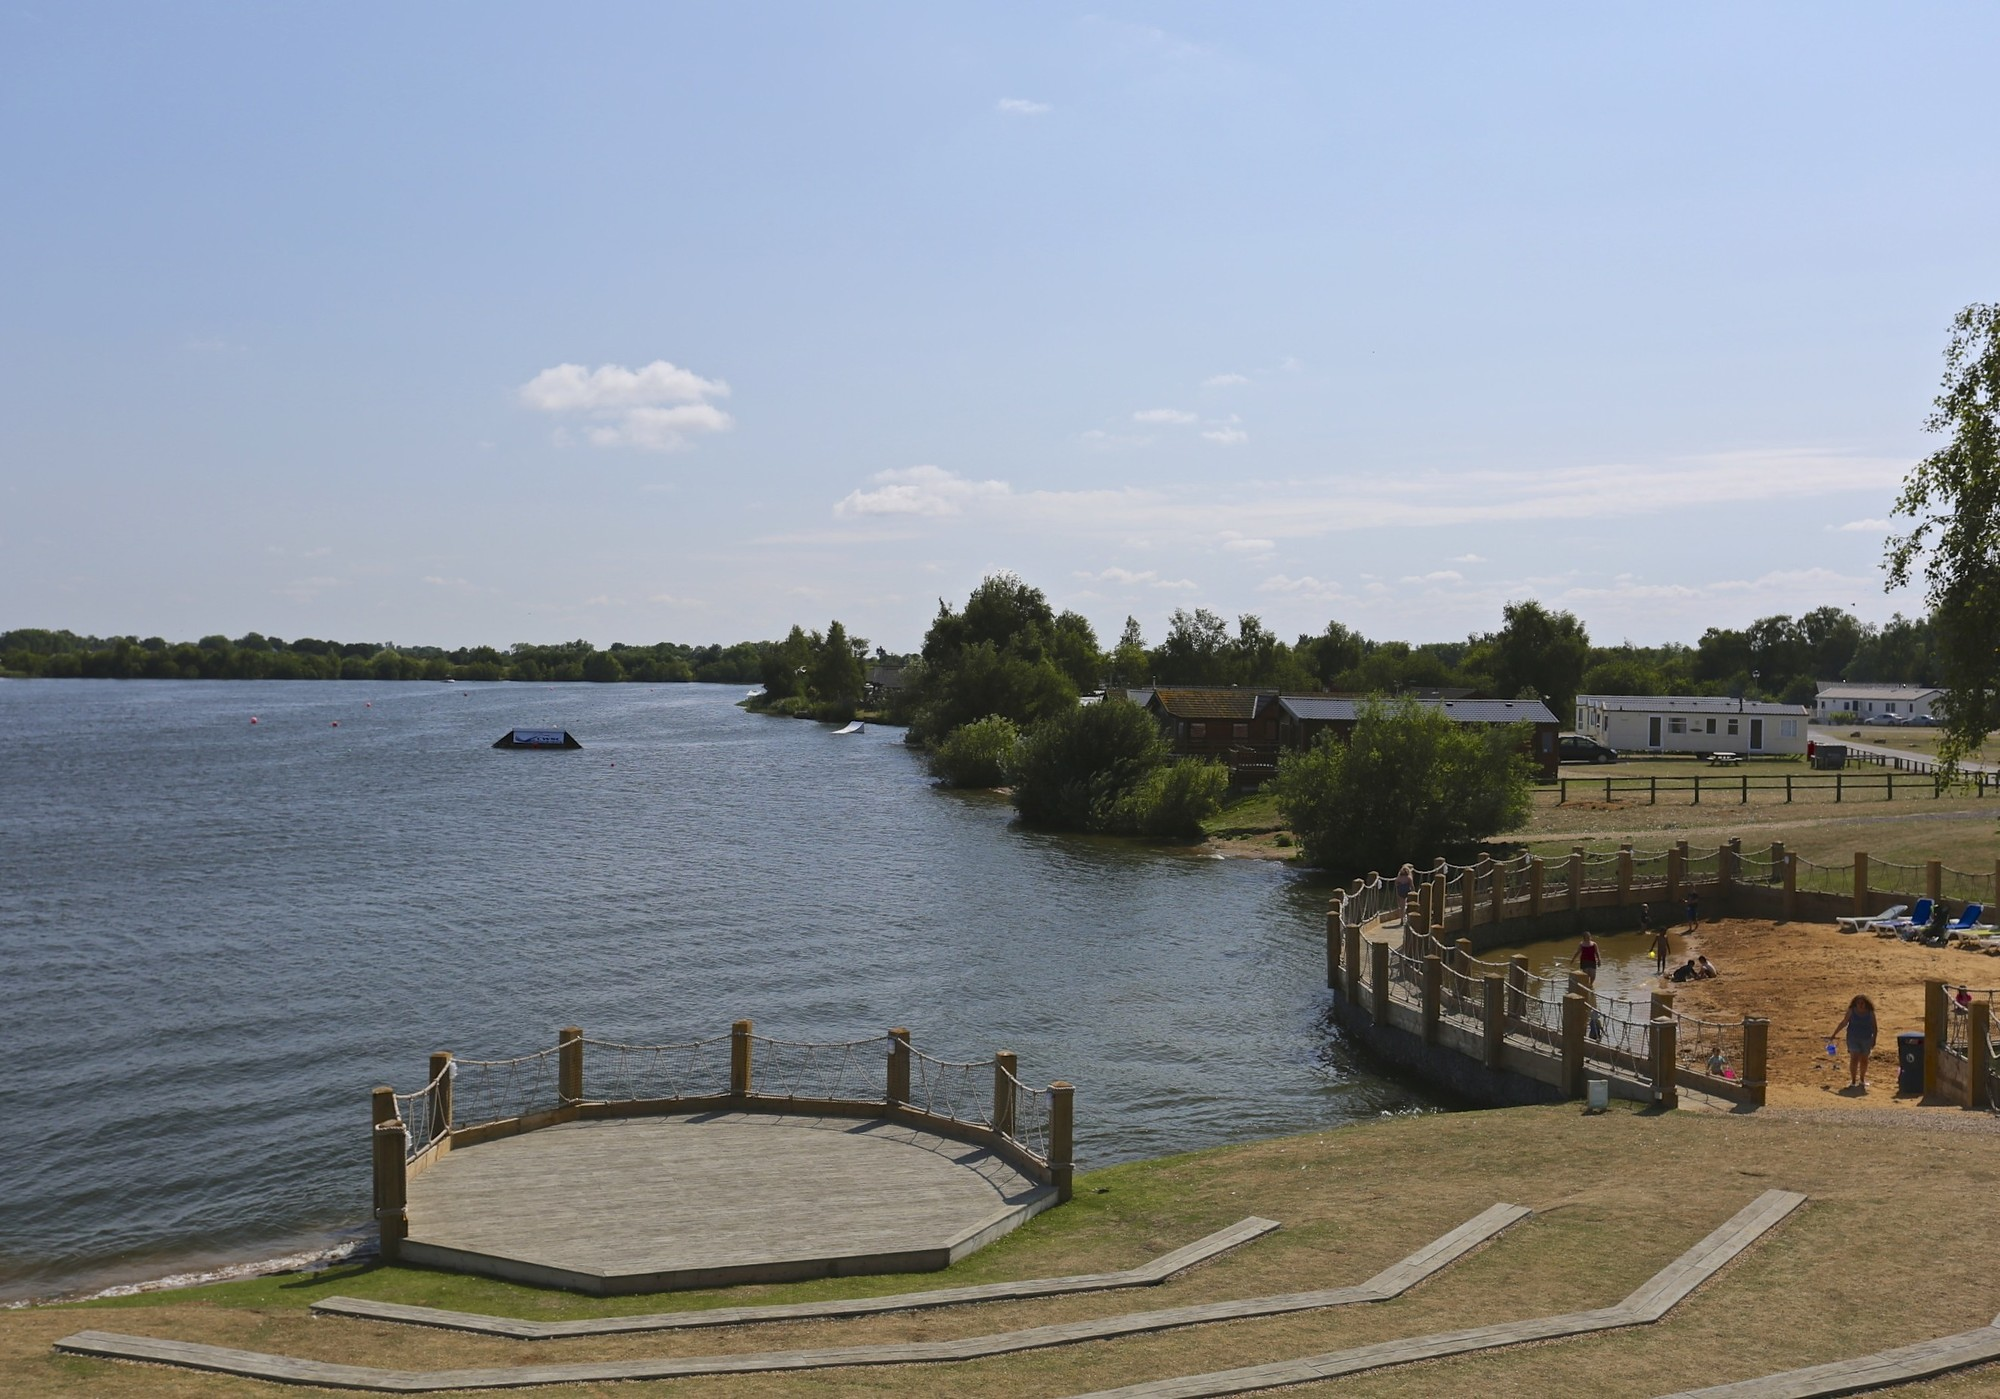 Tattershall lakes country park holiday lodge park in lincolnshire central north england for Tattershall lakes swimming pool